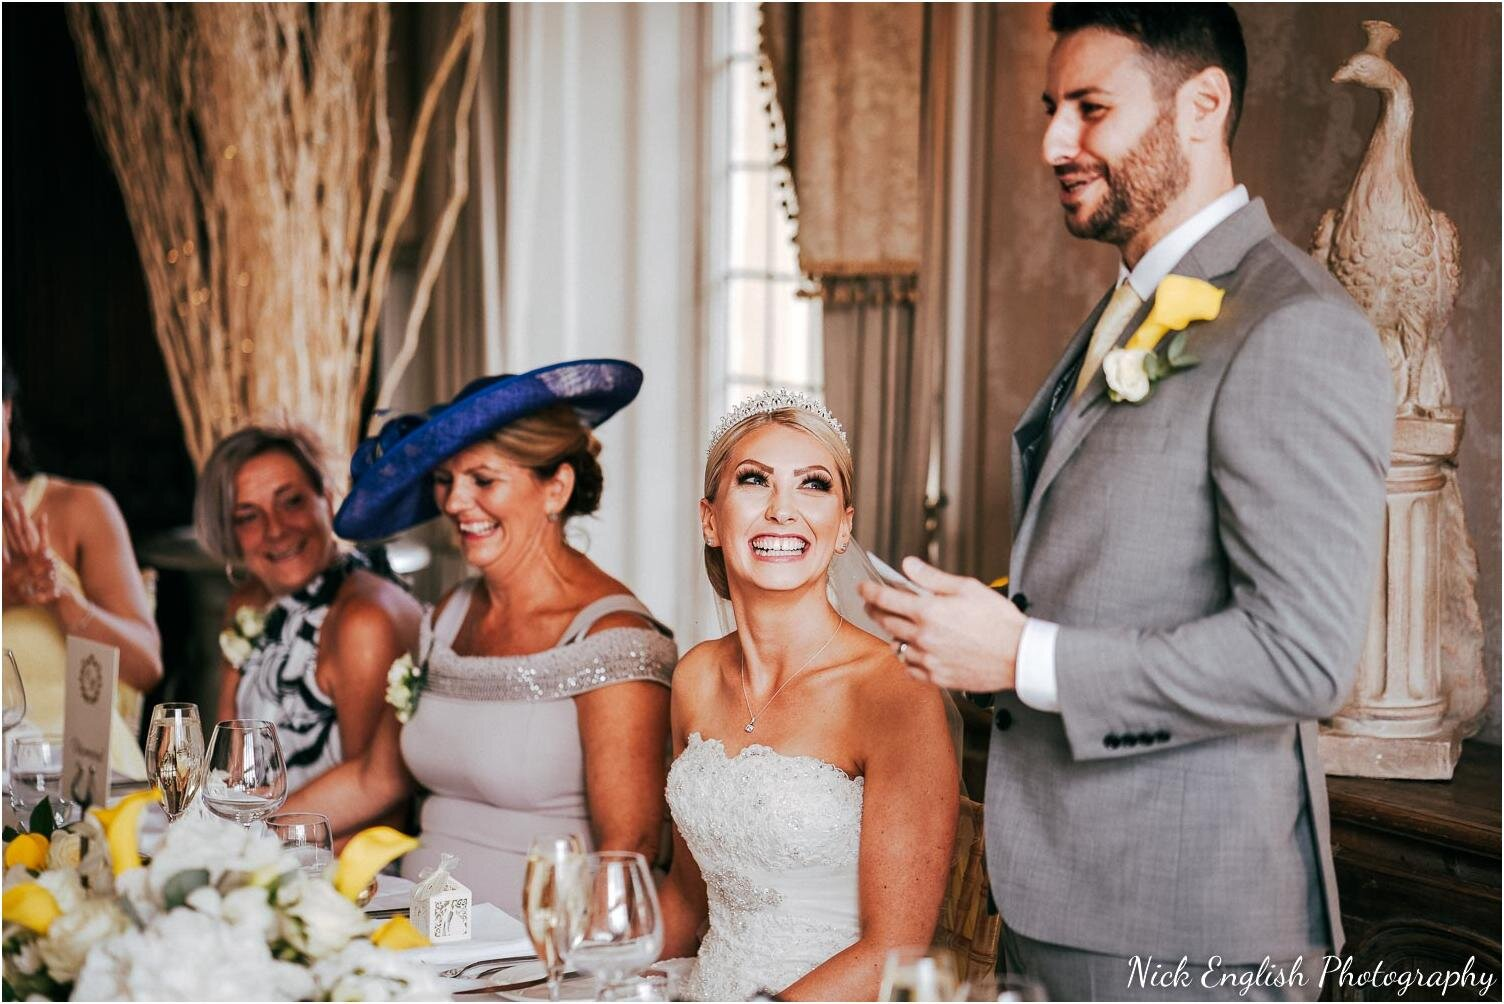 Falcon_Manor_Yorkshire_Wedding_Photographer-88.jpg